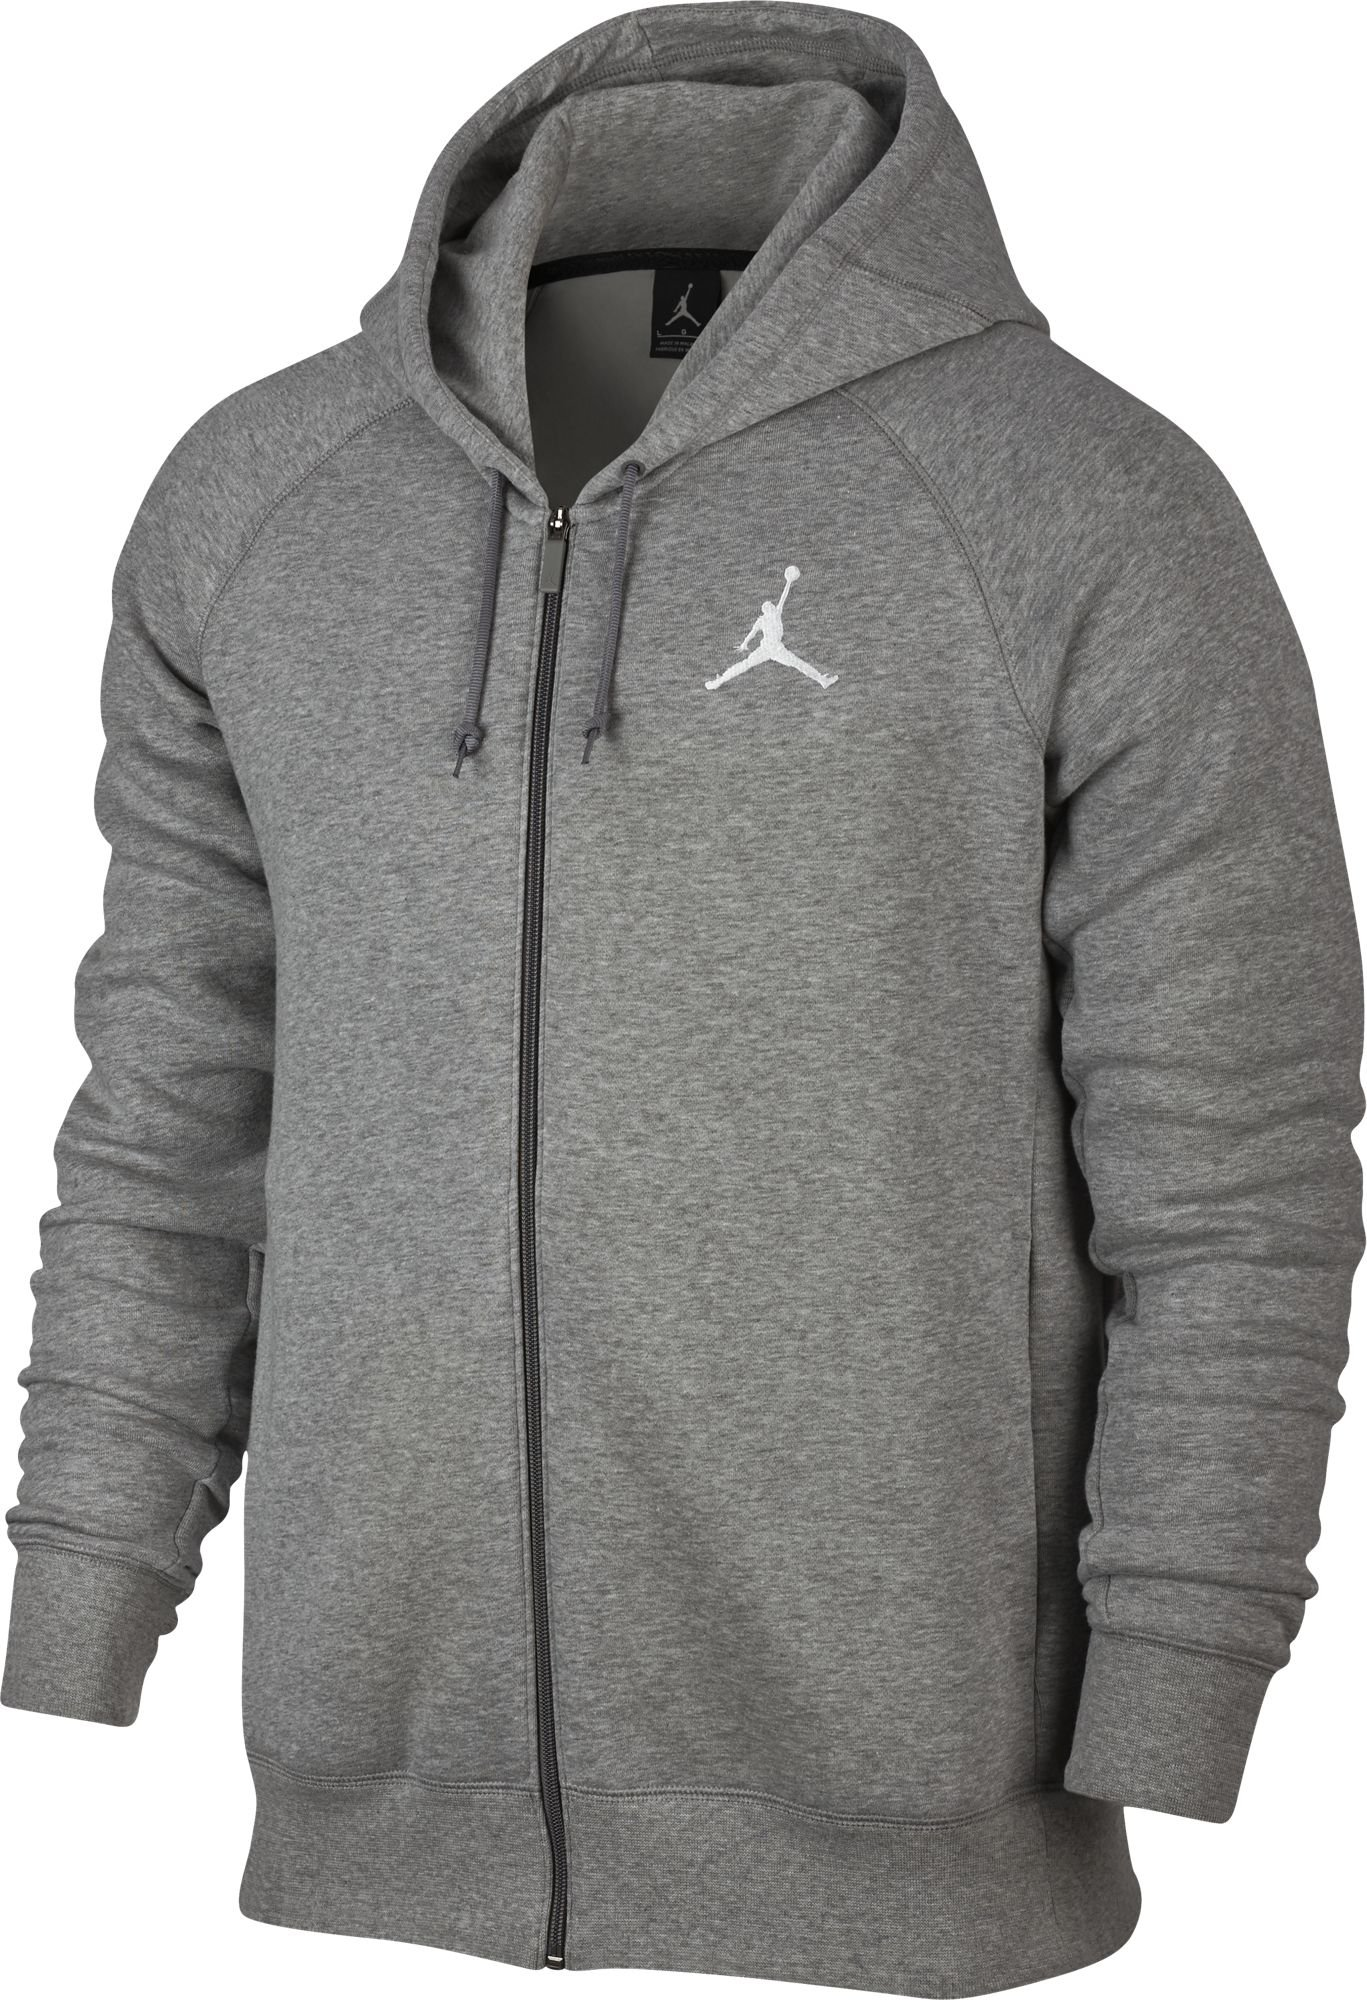 Nike Mens Jordan Flight Full Zip Hooded Sweatshirt Light Grey/White 823064-063 Size Medium